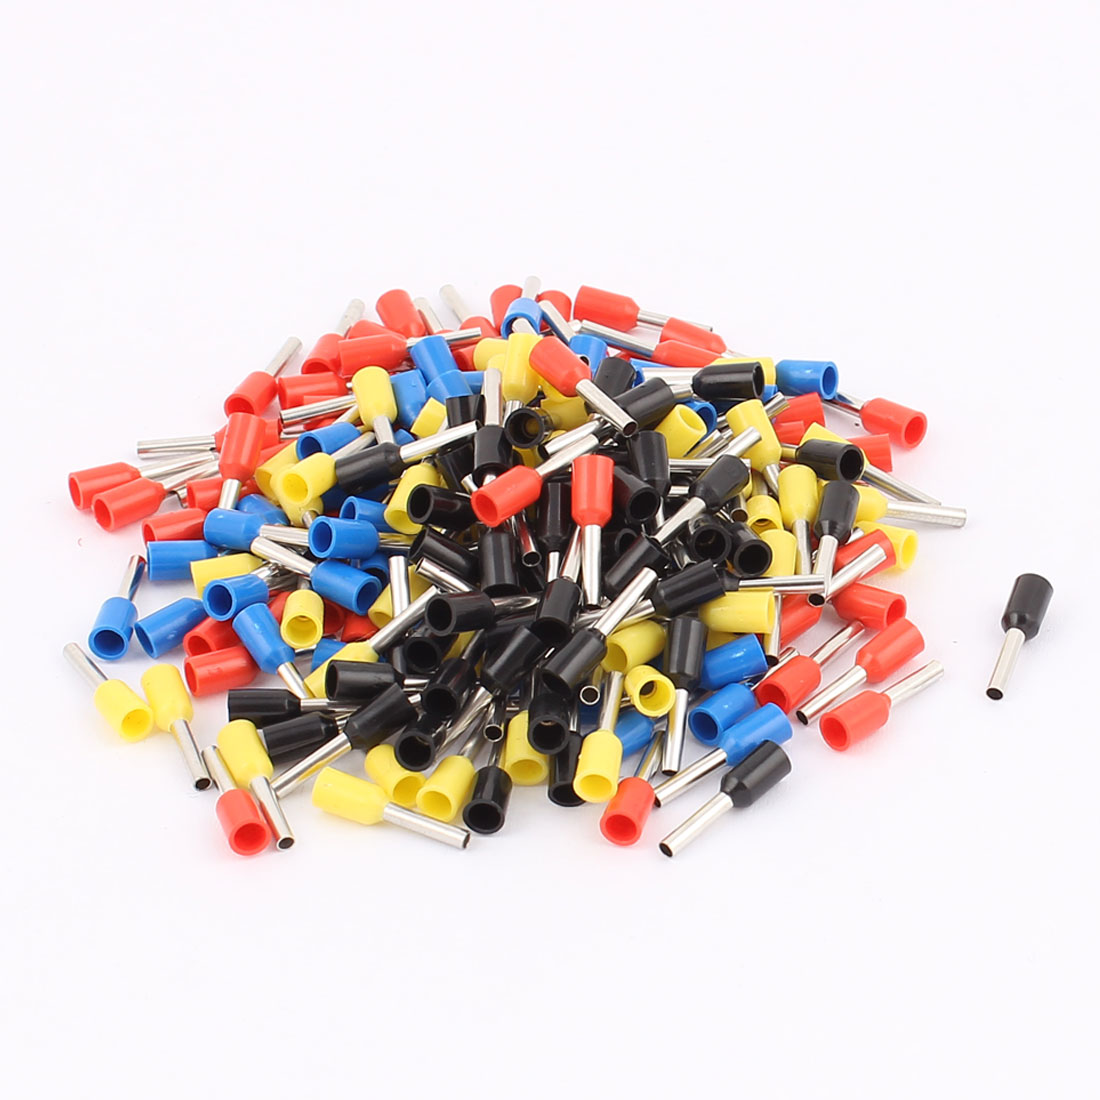 200Pcs E1008 18AWG Plastic Tube Insulated Cable Wire Ends Terminals